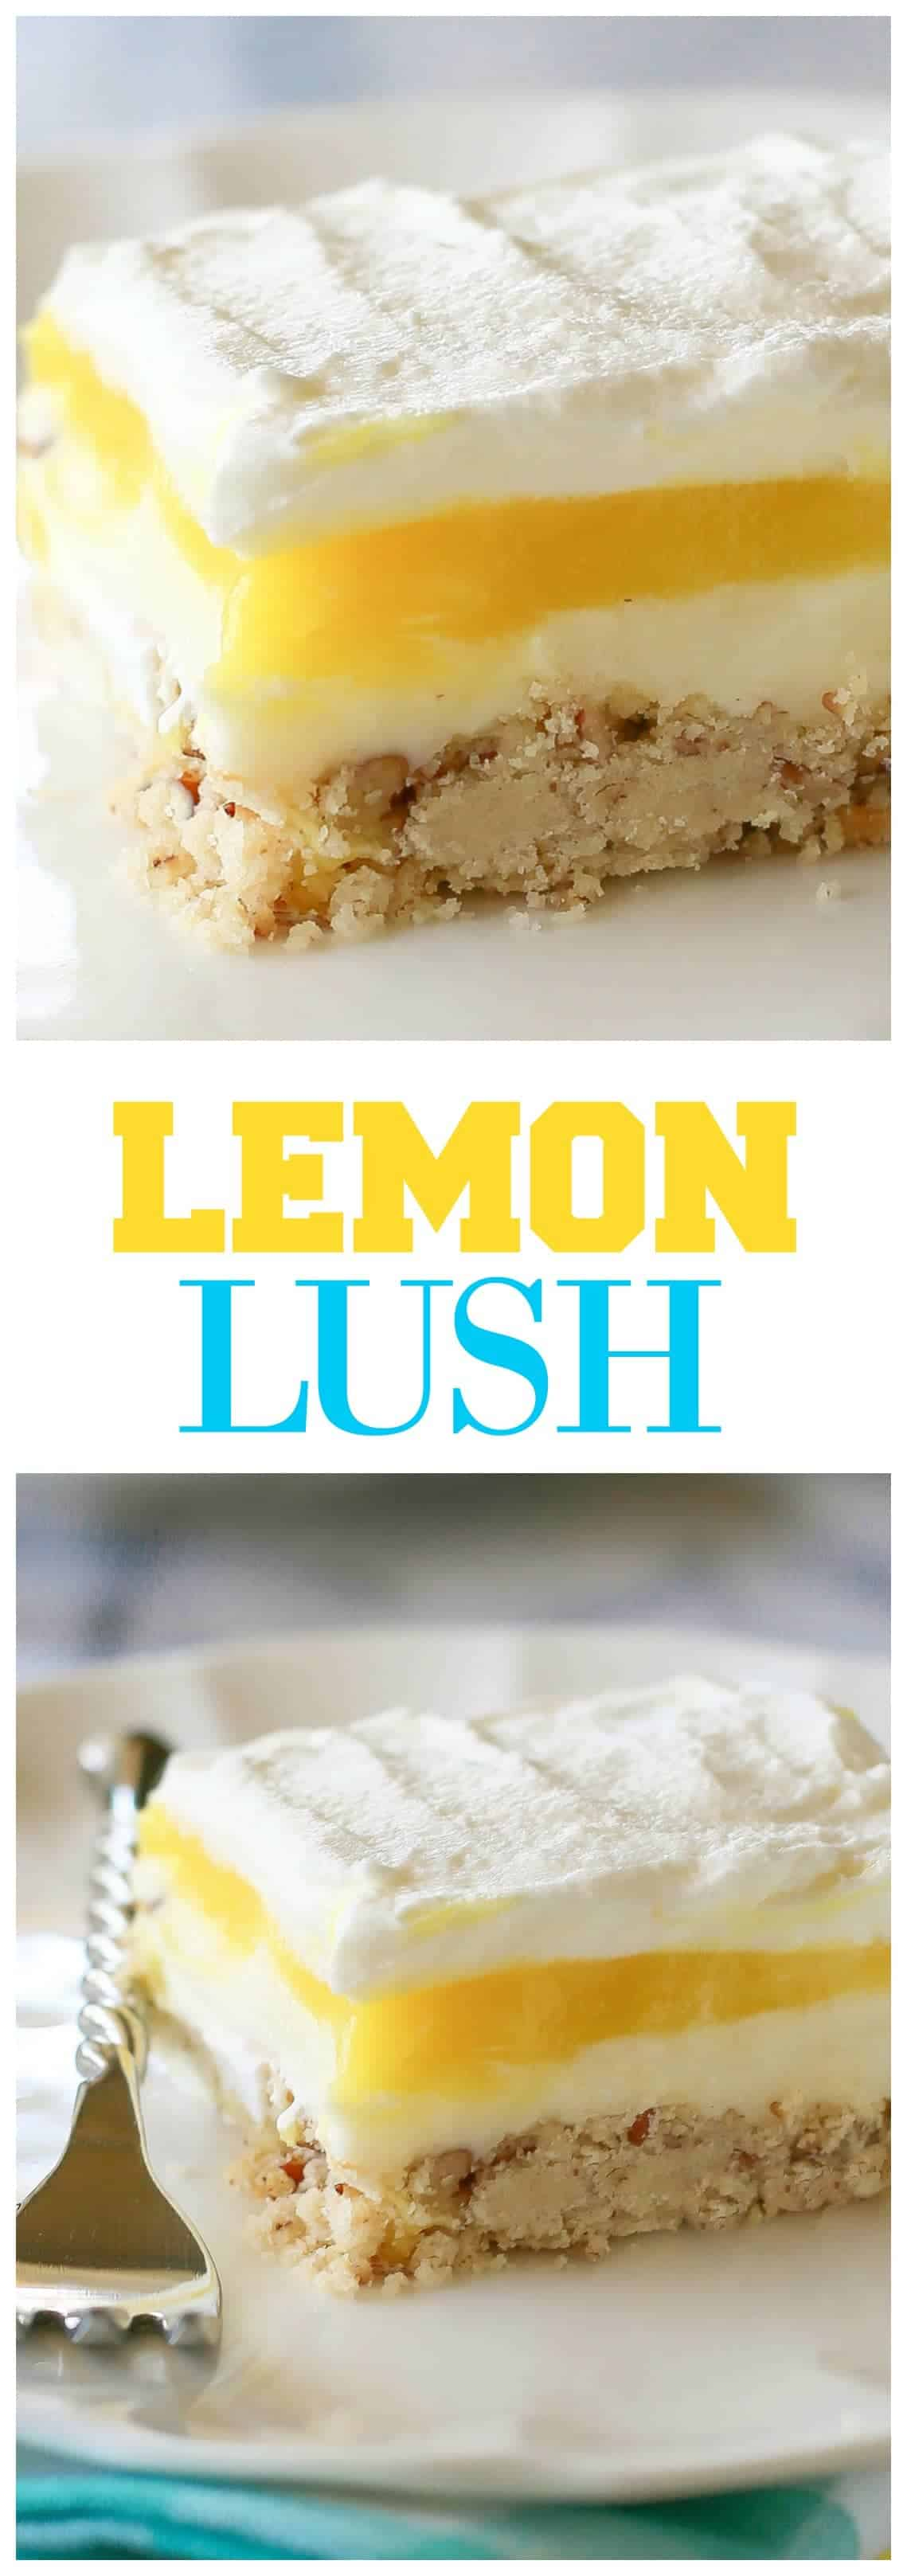 Lemon Lush - a light and refreshing lemon dessert with a shortbread crust. #lemon #bars #dessert #summerdessert